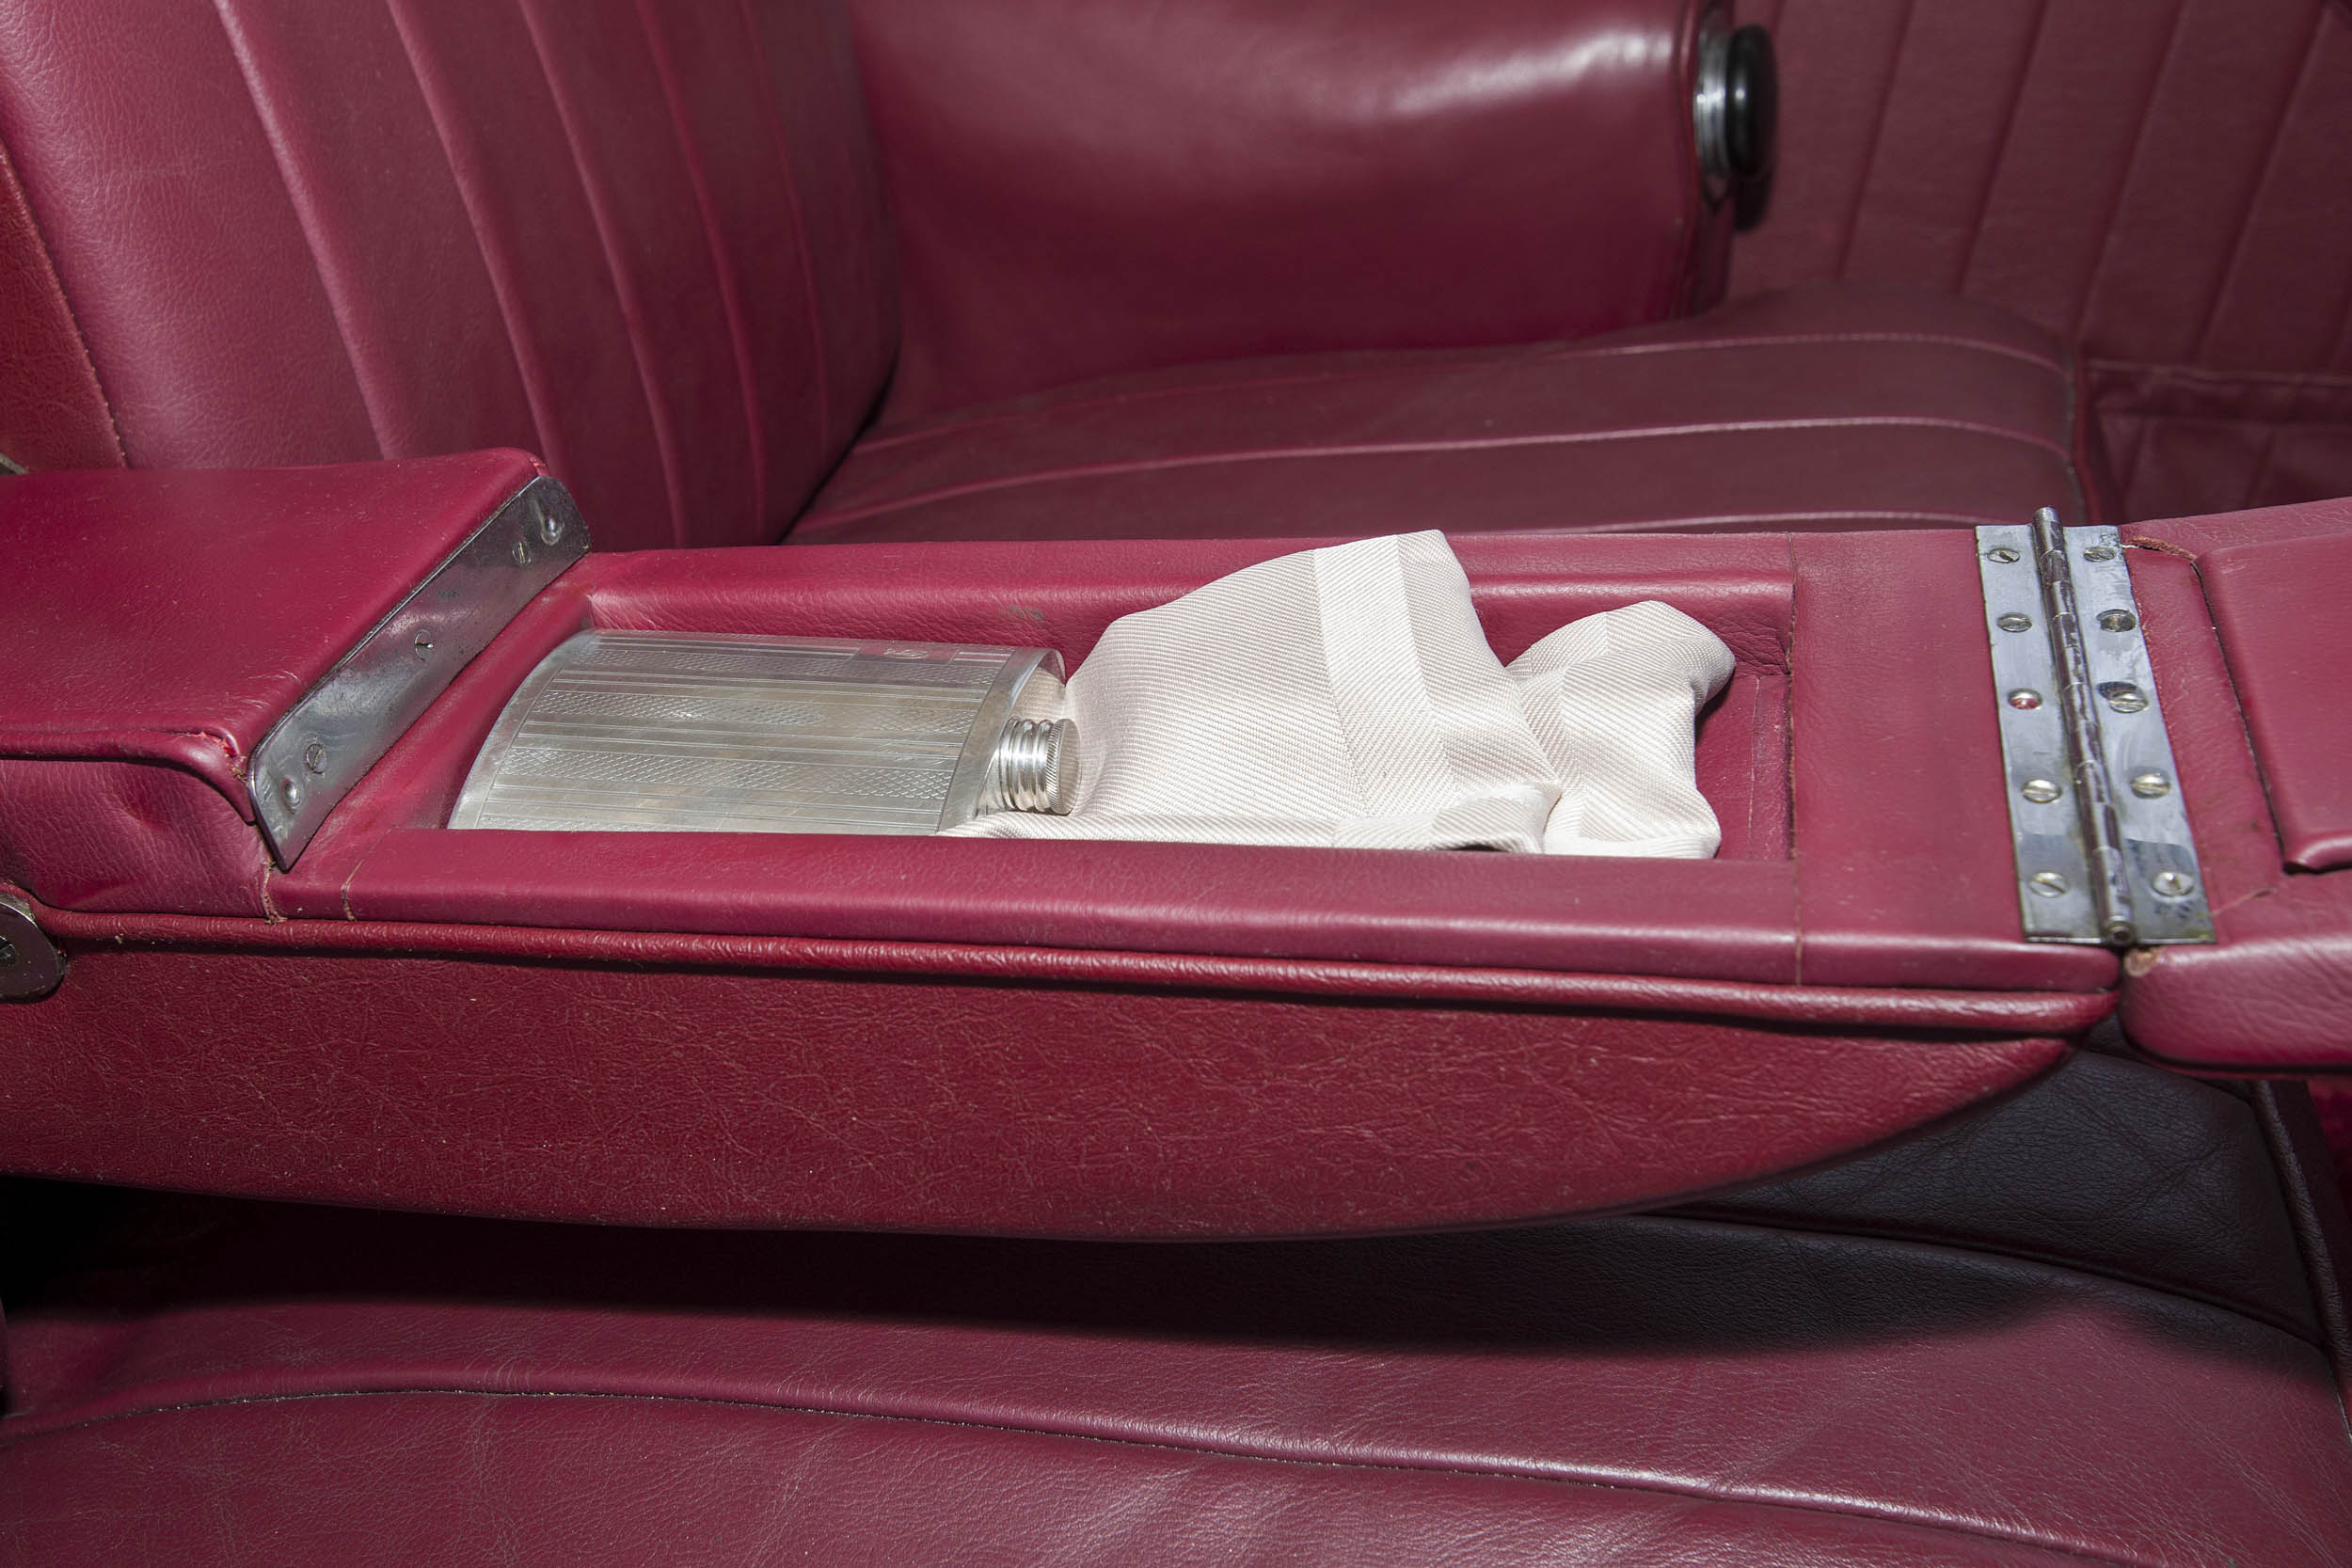 Factory literature specified that the pulldown center console in the rear seat was meant to hold an emergency kit. David Dagostino is quite sure that a flask of fine whisky is what the Lagonda's creators had in mind.